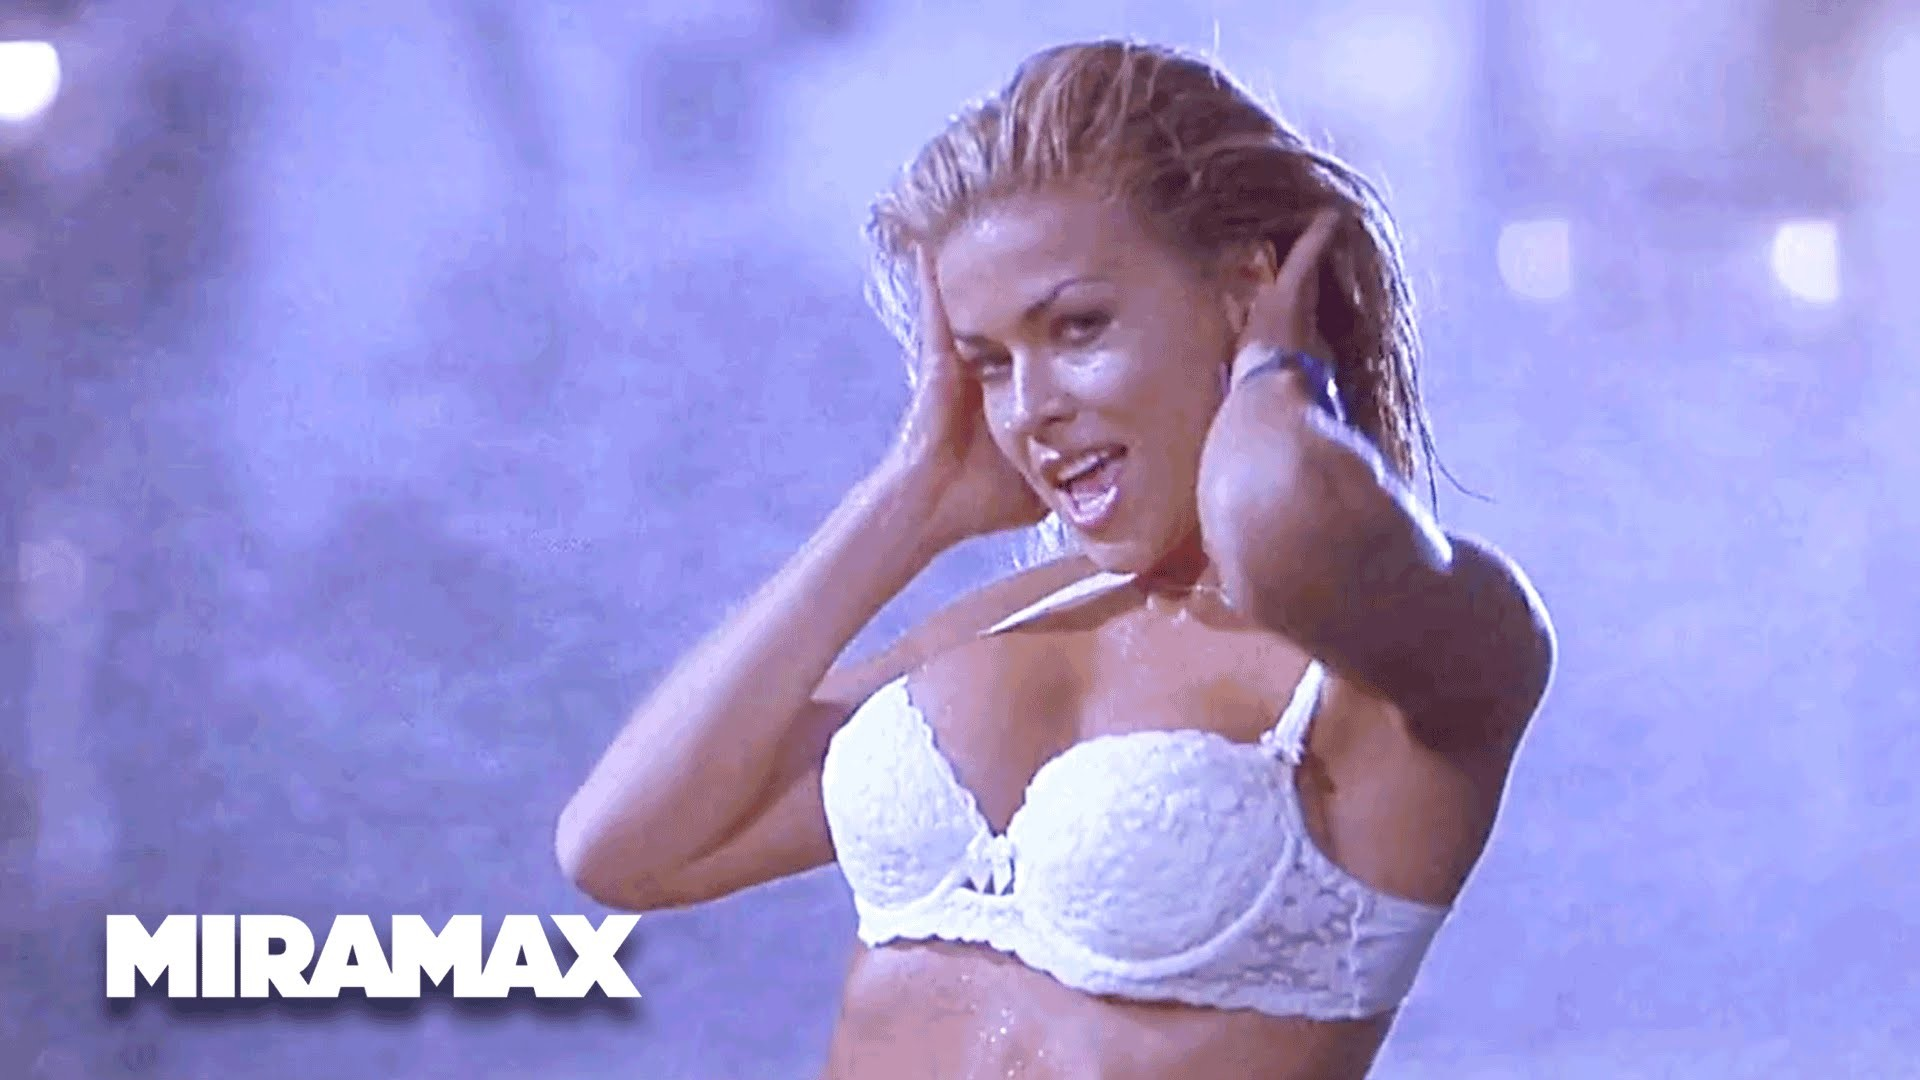 1920x1080 Scary Movie | 'Turn to Page 54' (HD) - Carmen Electra, Dave Sheridan |  MIRAMAX - YouTube